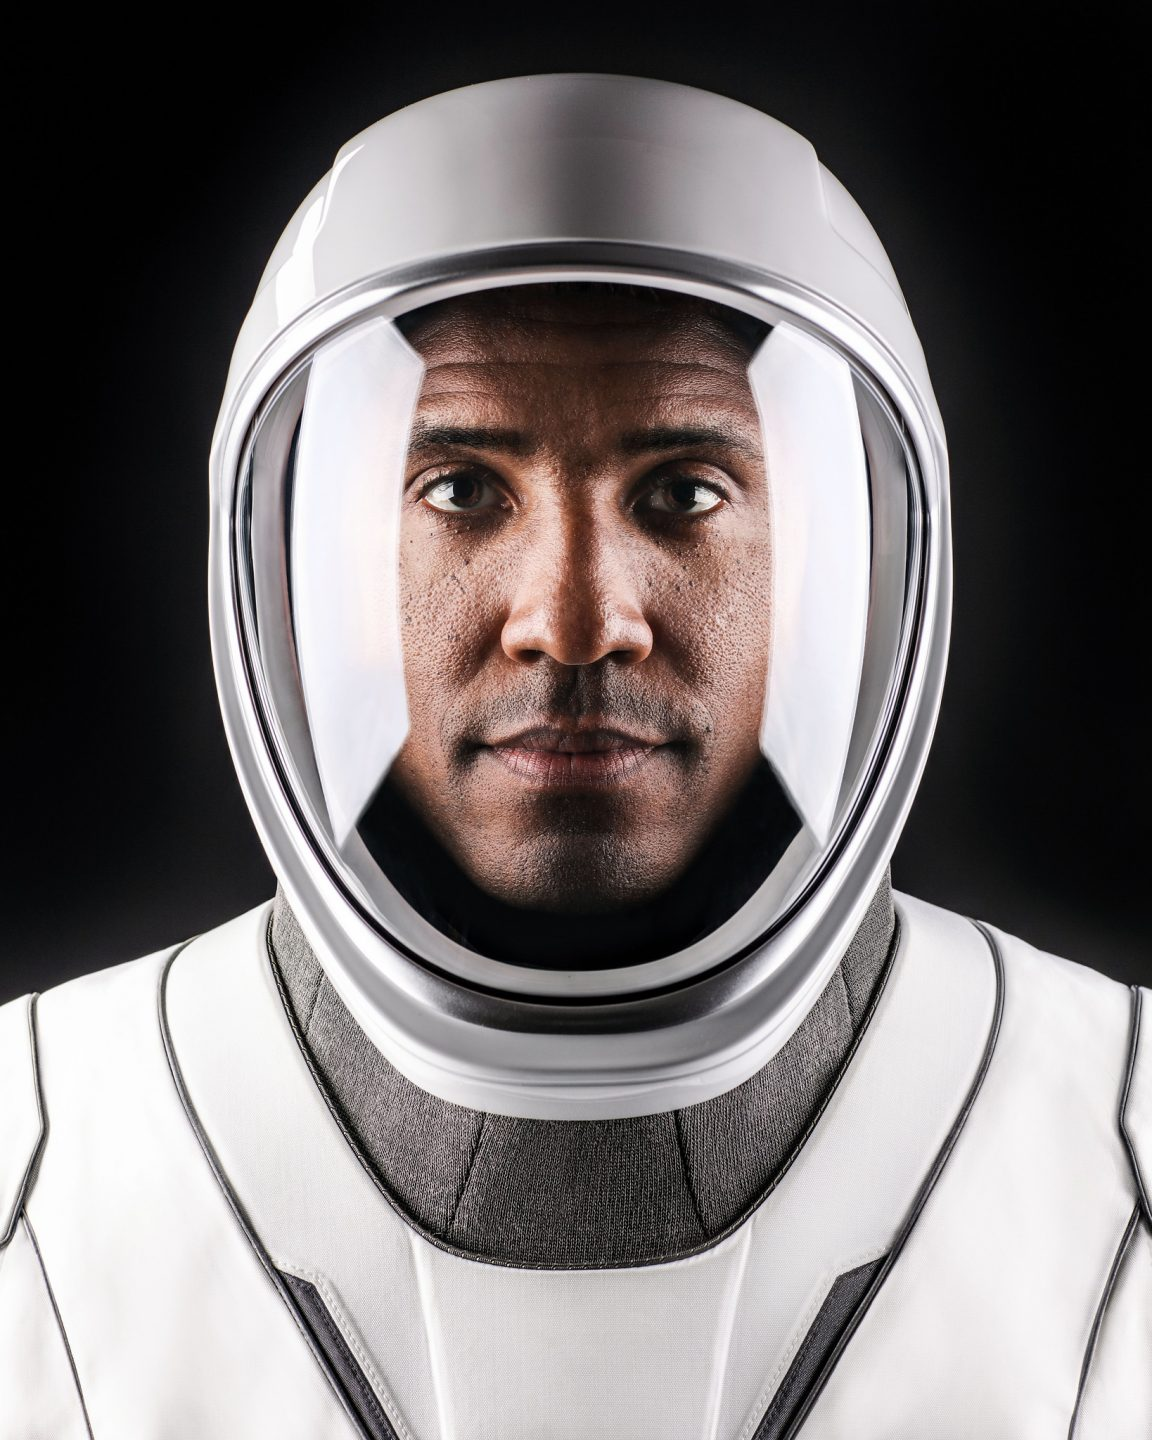 A man gazes into the camera in a sleek, futuristic-looking helmet and suit.